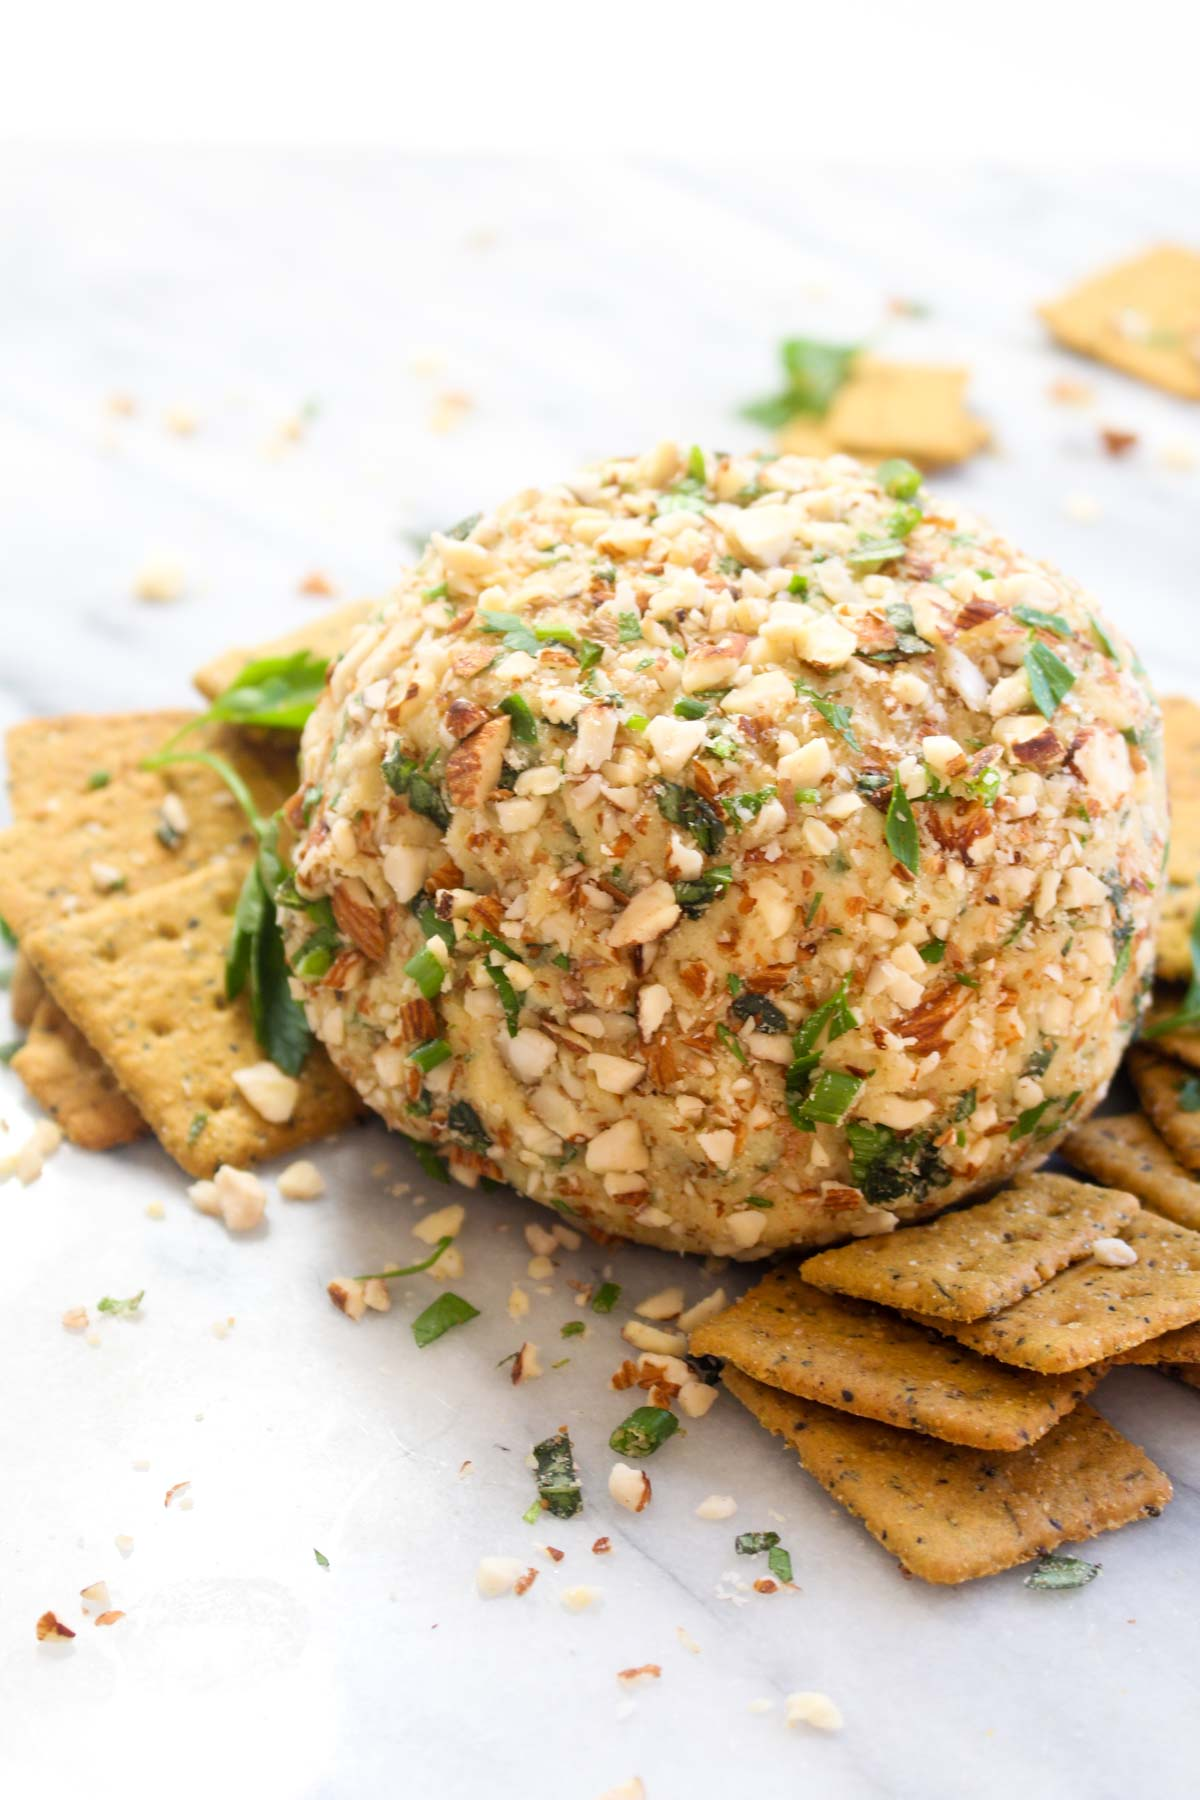 This Vegan Cheese Ball with Herbs is a make-ahead party appetizer that is sure to please a crowd! It is rich, creamy, spreadable, and full of fresh herb flavor.